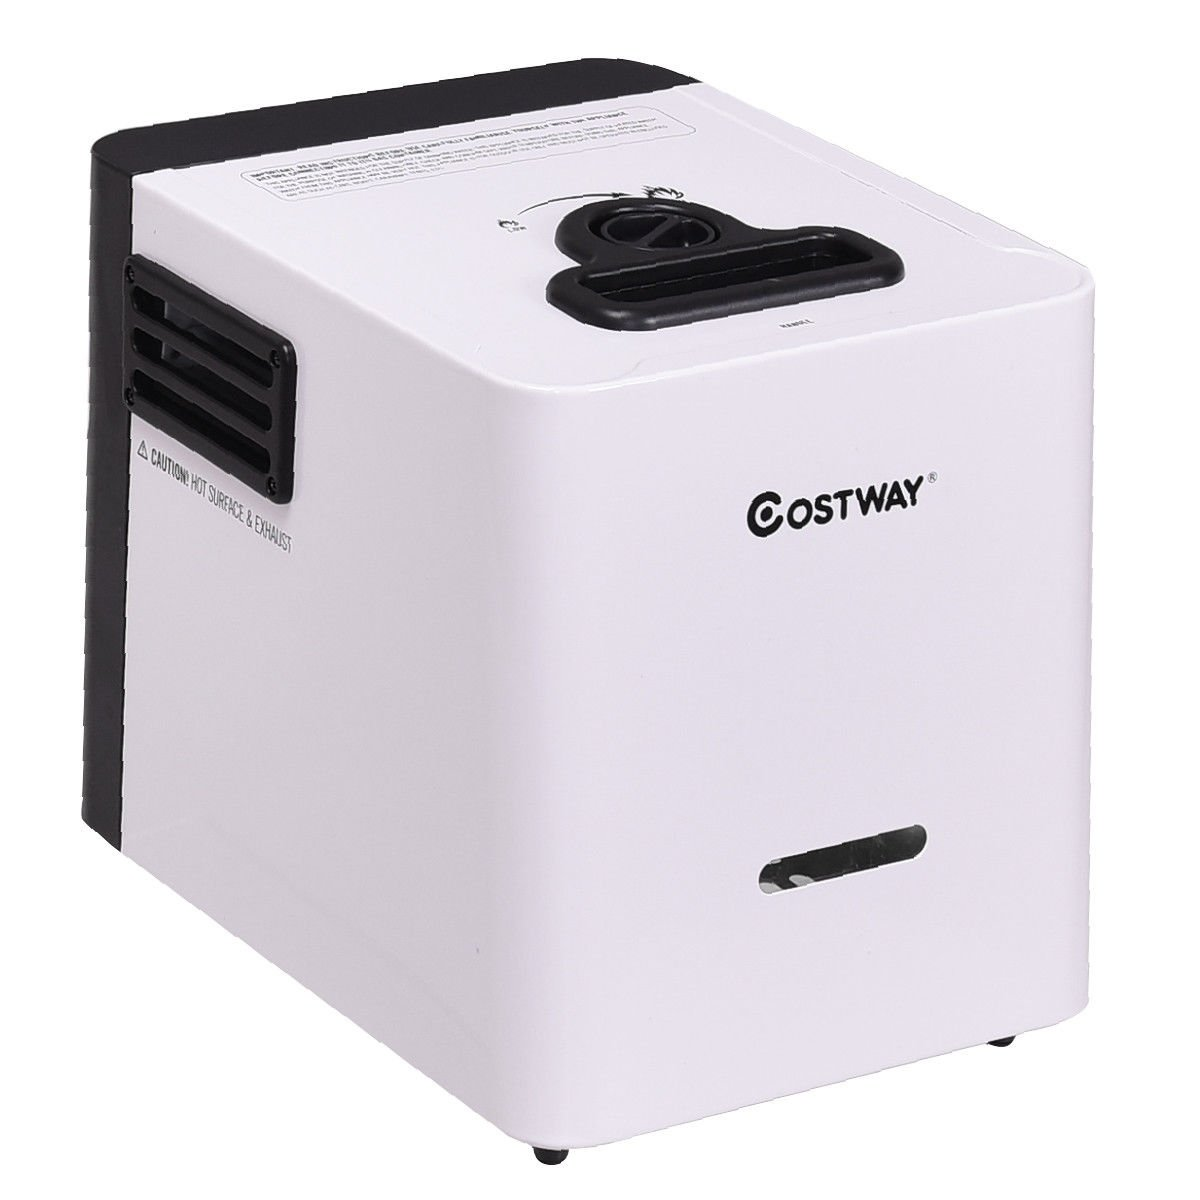 Costway Propane Gas Portable Instant Hot Water